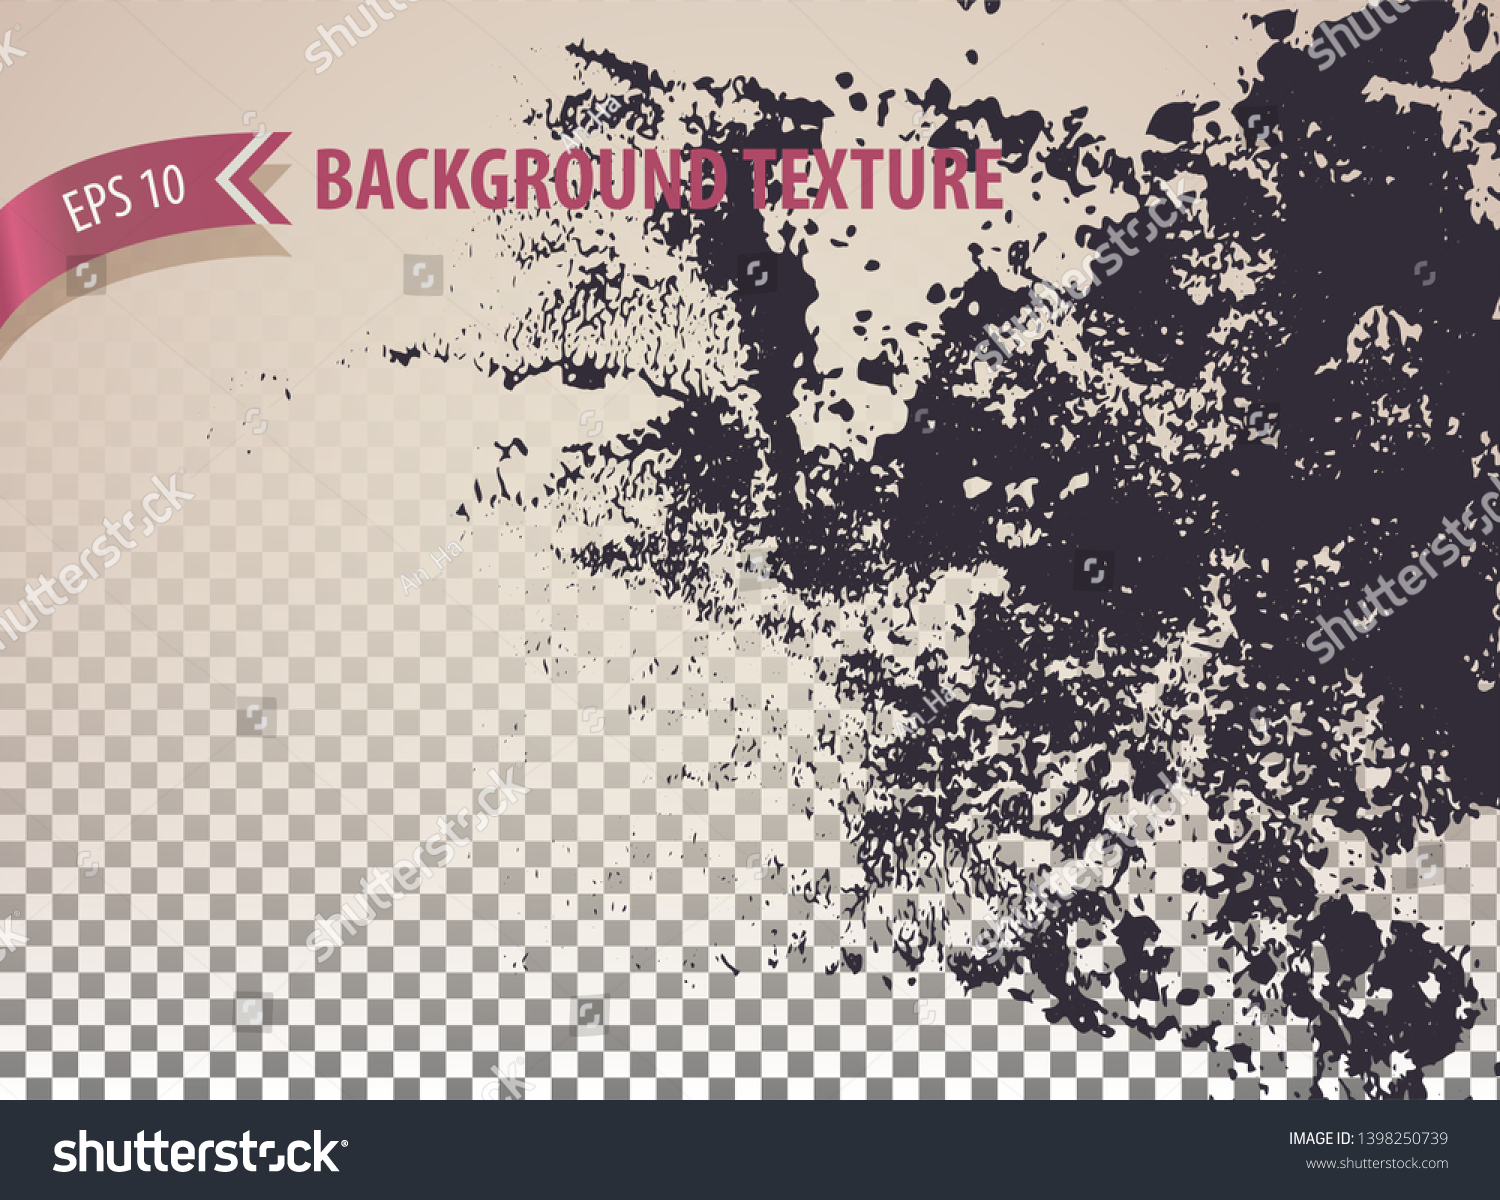 Rough Rusty Overlay Texture Distressed Effect Stock Vector Royalty Free 1398250739